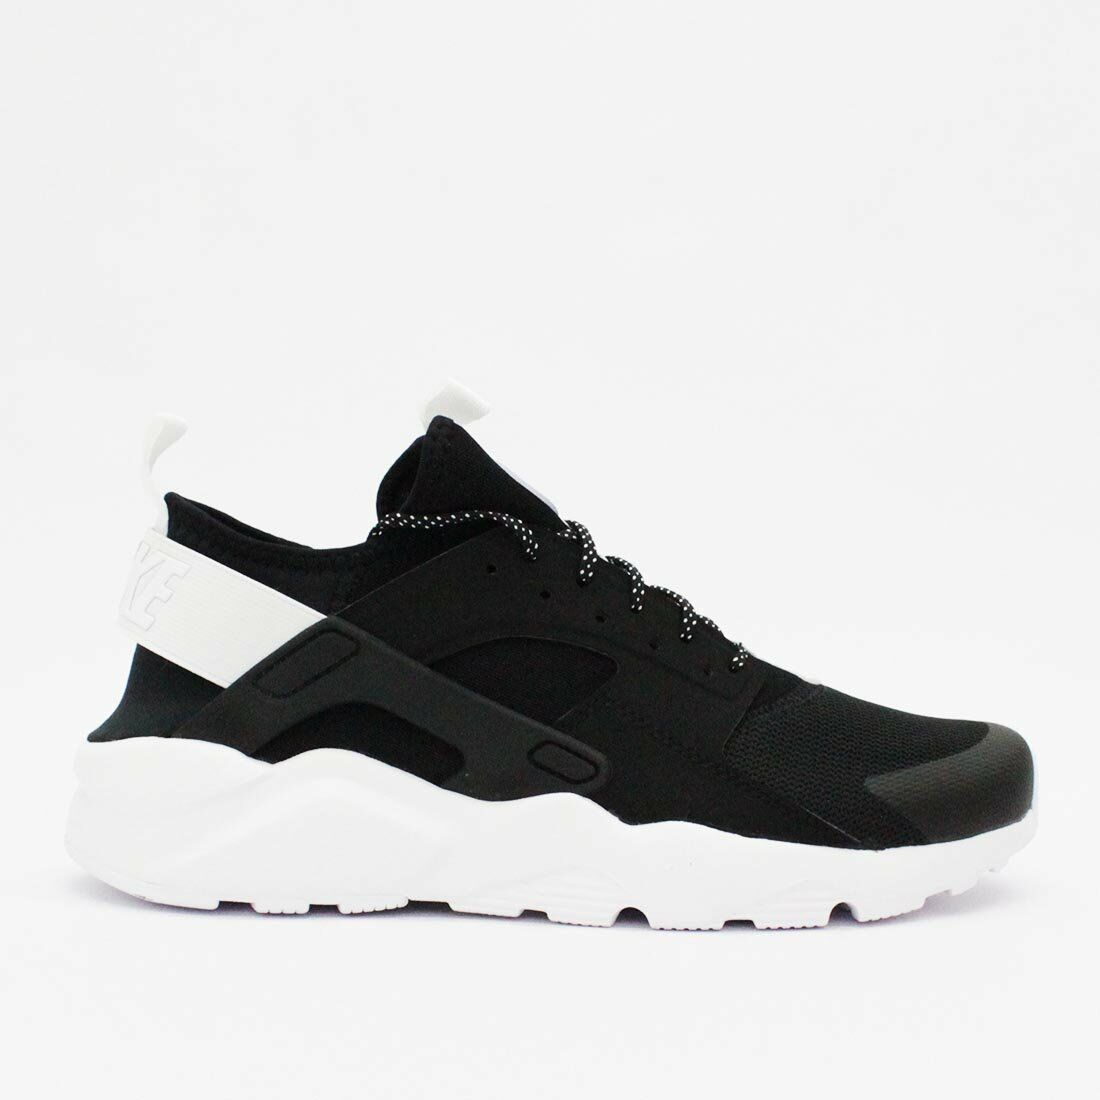 NIKE MEN AIR HUARACHE RUN ULTRA BLACK US7-11 03'